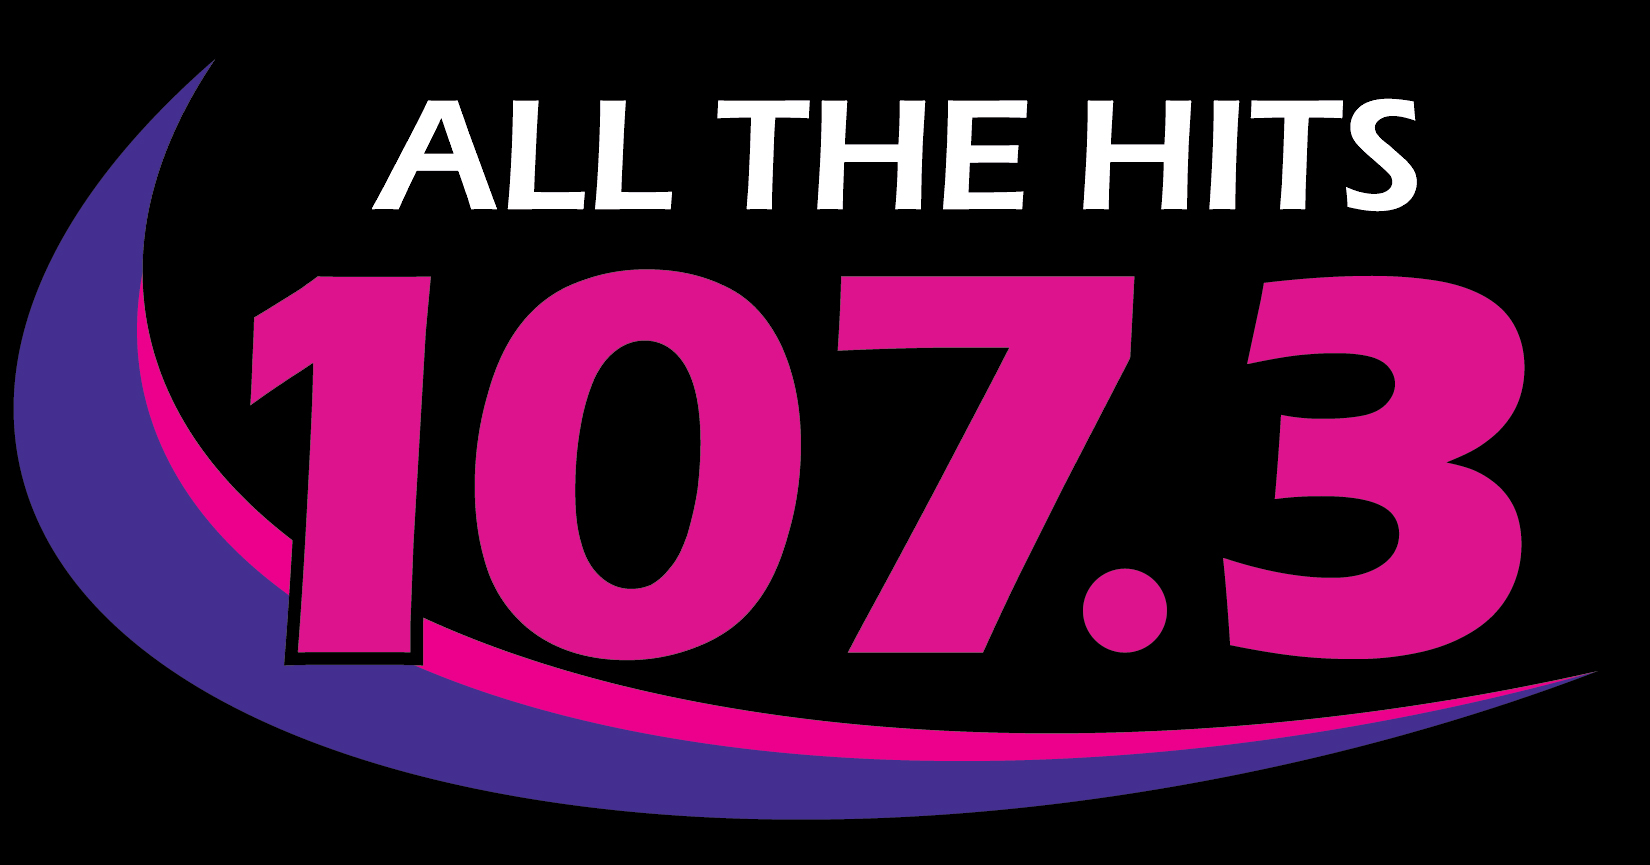 DCW 107.3 ALL THE HITS